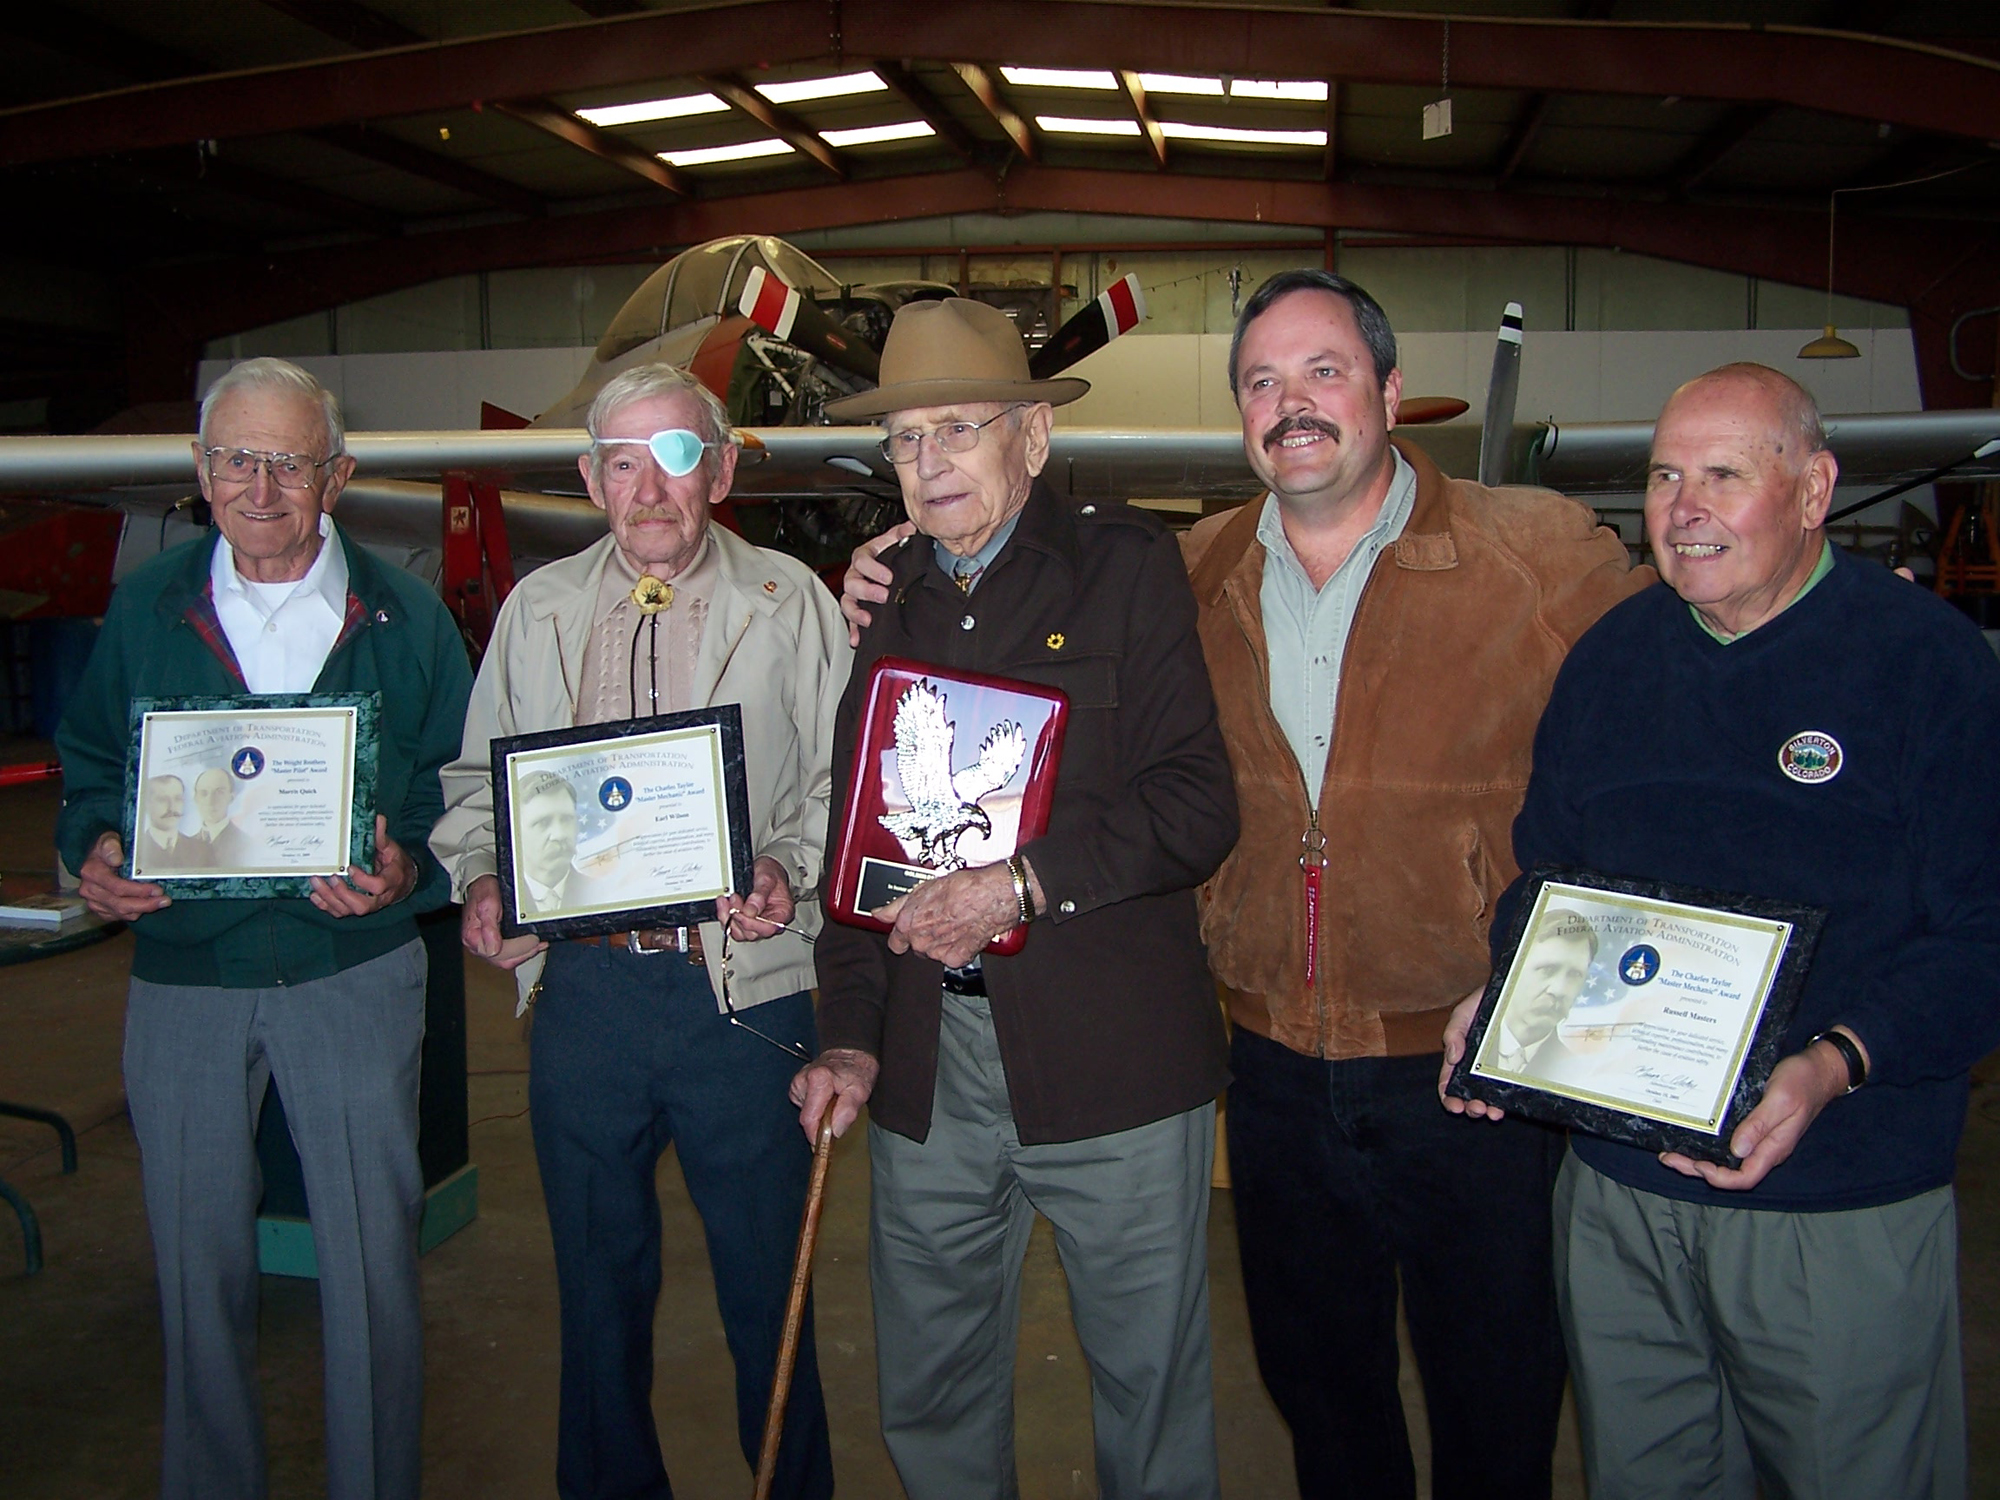 Four Outstanding Colorado Aviators Honored at Platte Valley Airport